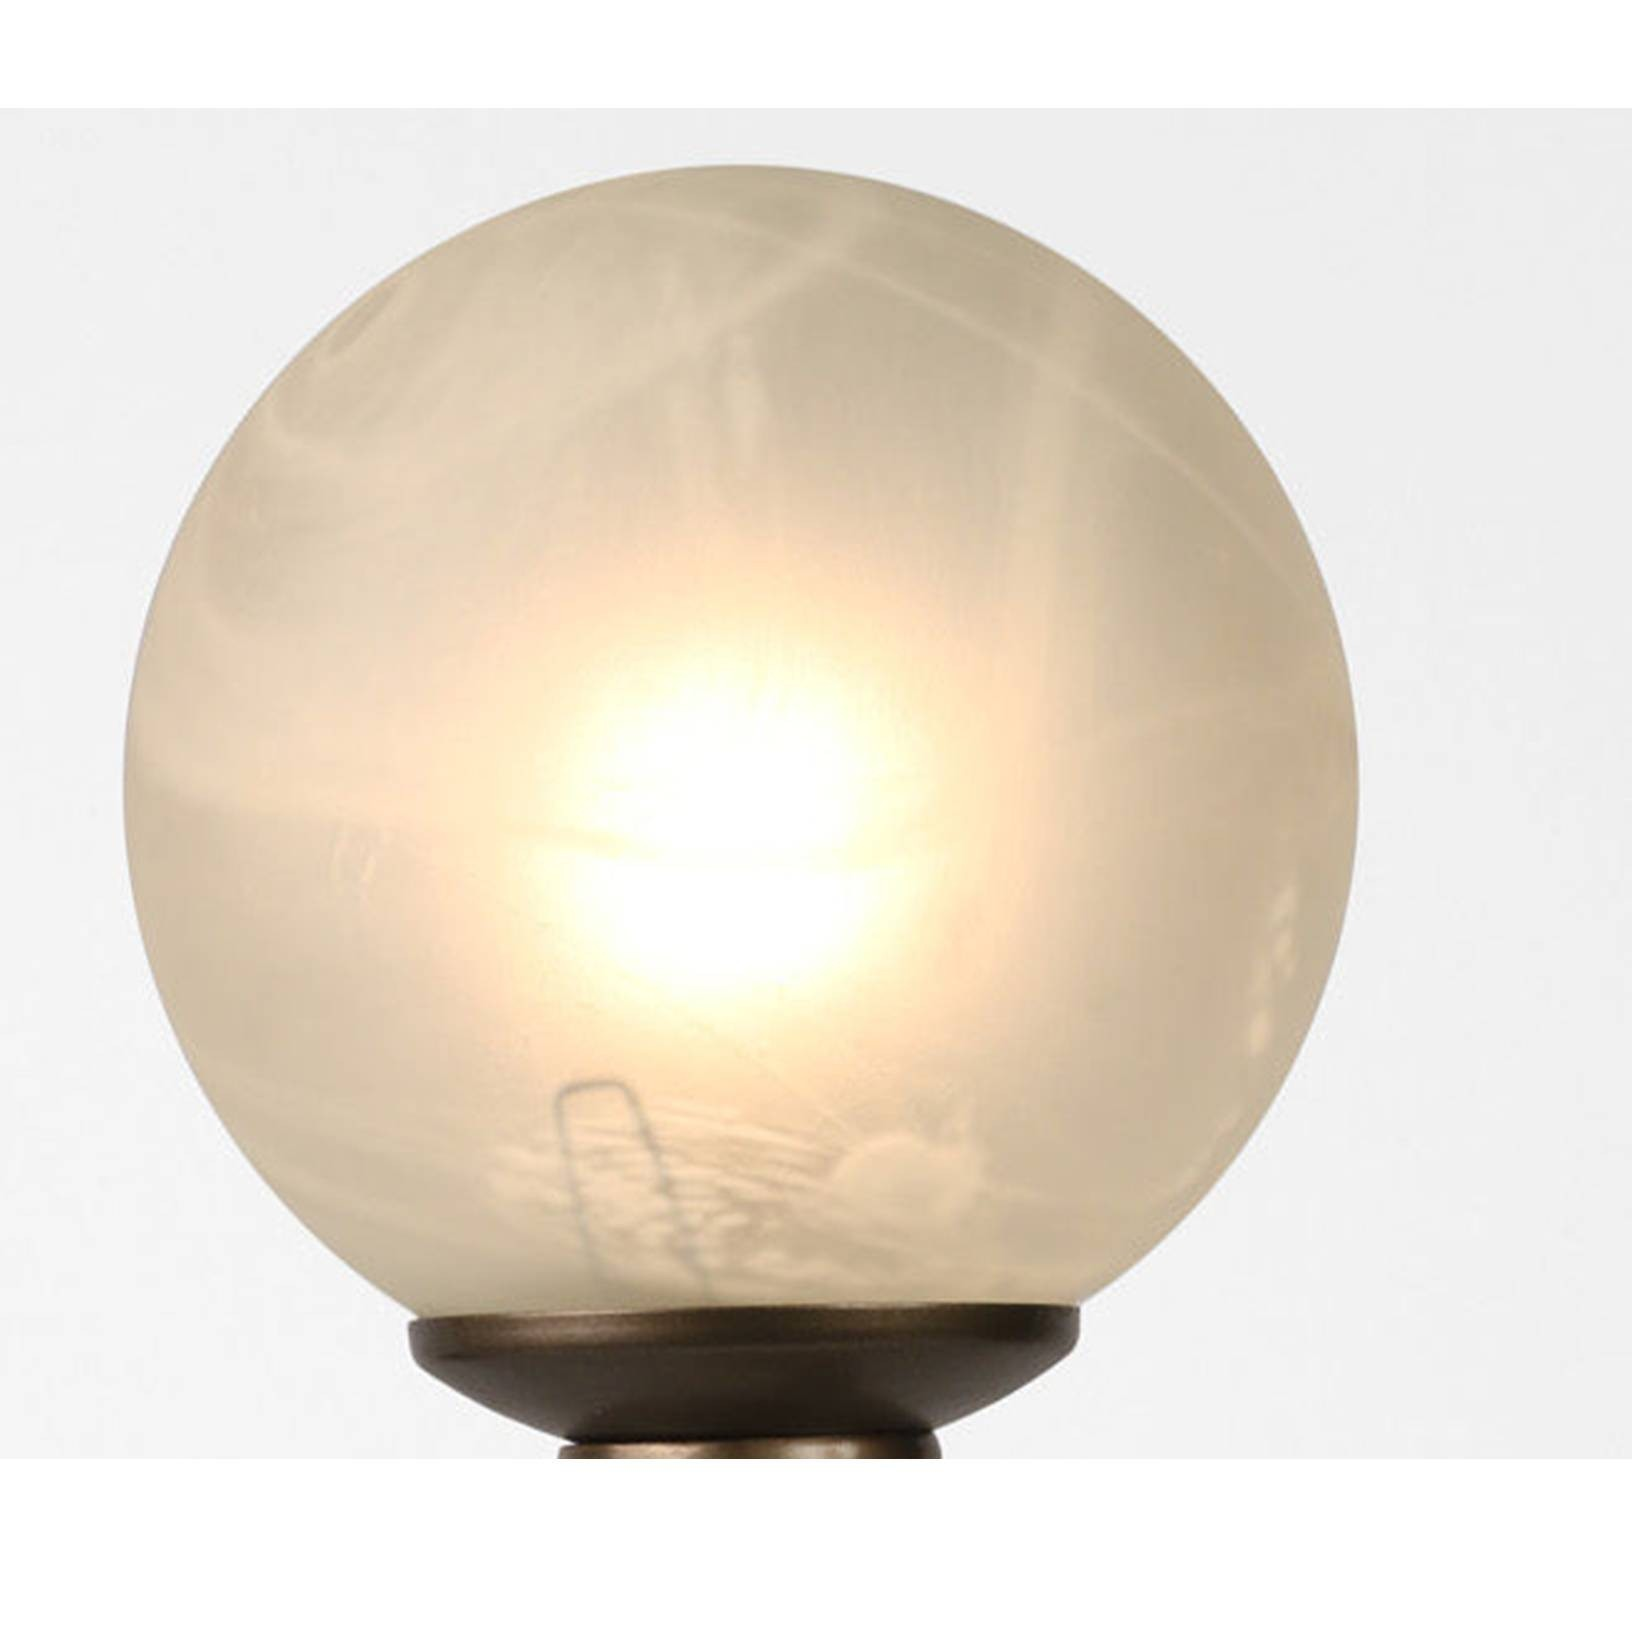 Shade Only Art Deco Style Glass Globe Shade Marble Swirl Effect